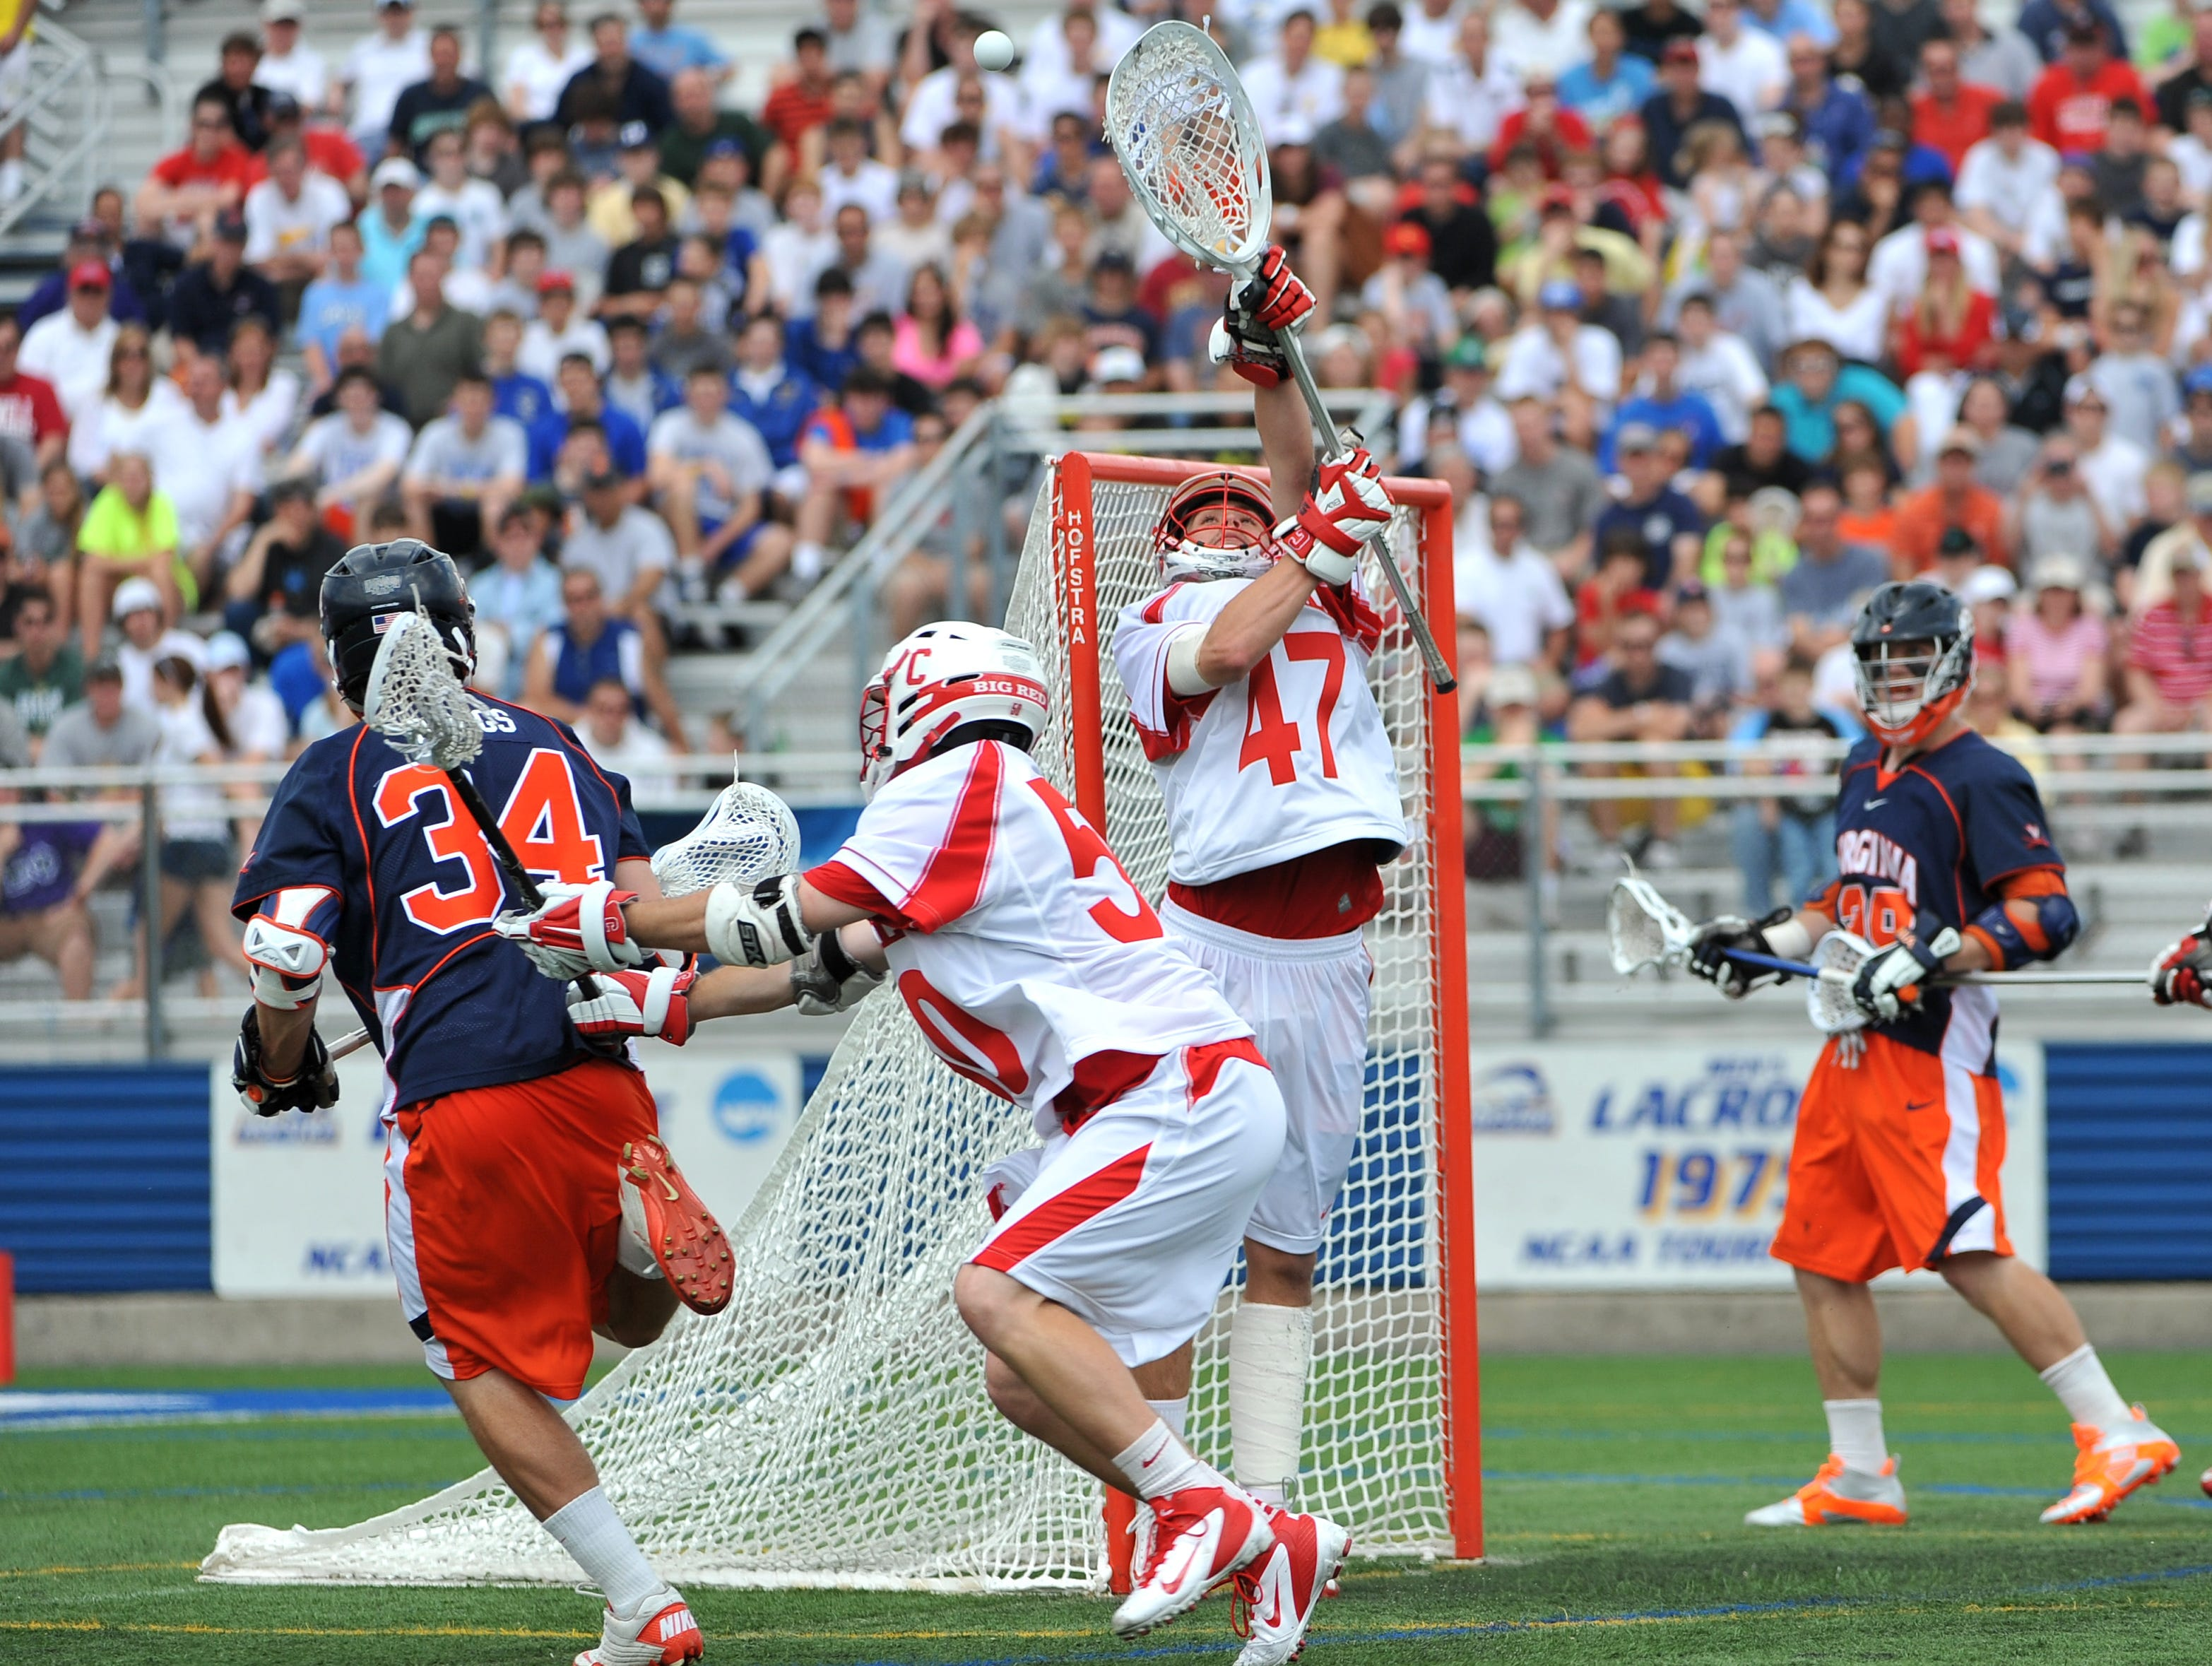 Cornell goalie AJ Fiore blocks a shot on goal by Virginia's Colin Briggs (34) as Cornell's Shane O'Neill (50) defends during the third quarter of an NCAA men's Division I lacrosse tournament quarterfinal on Saturday, May 21, 2011, at Hofstra University in Hempstead, N.Y.